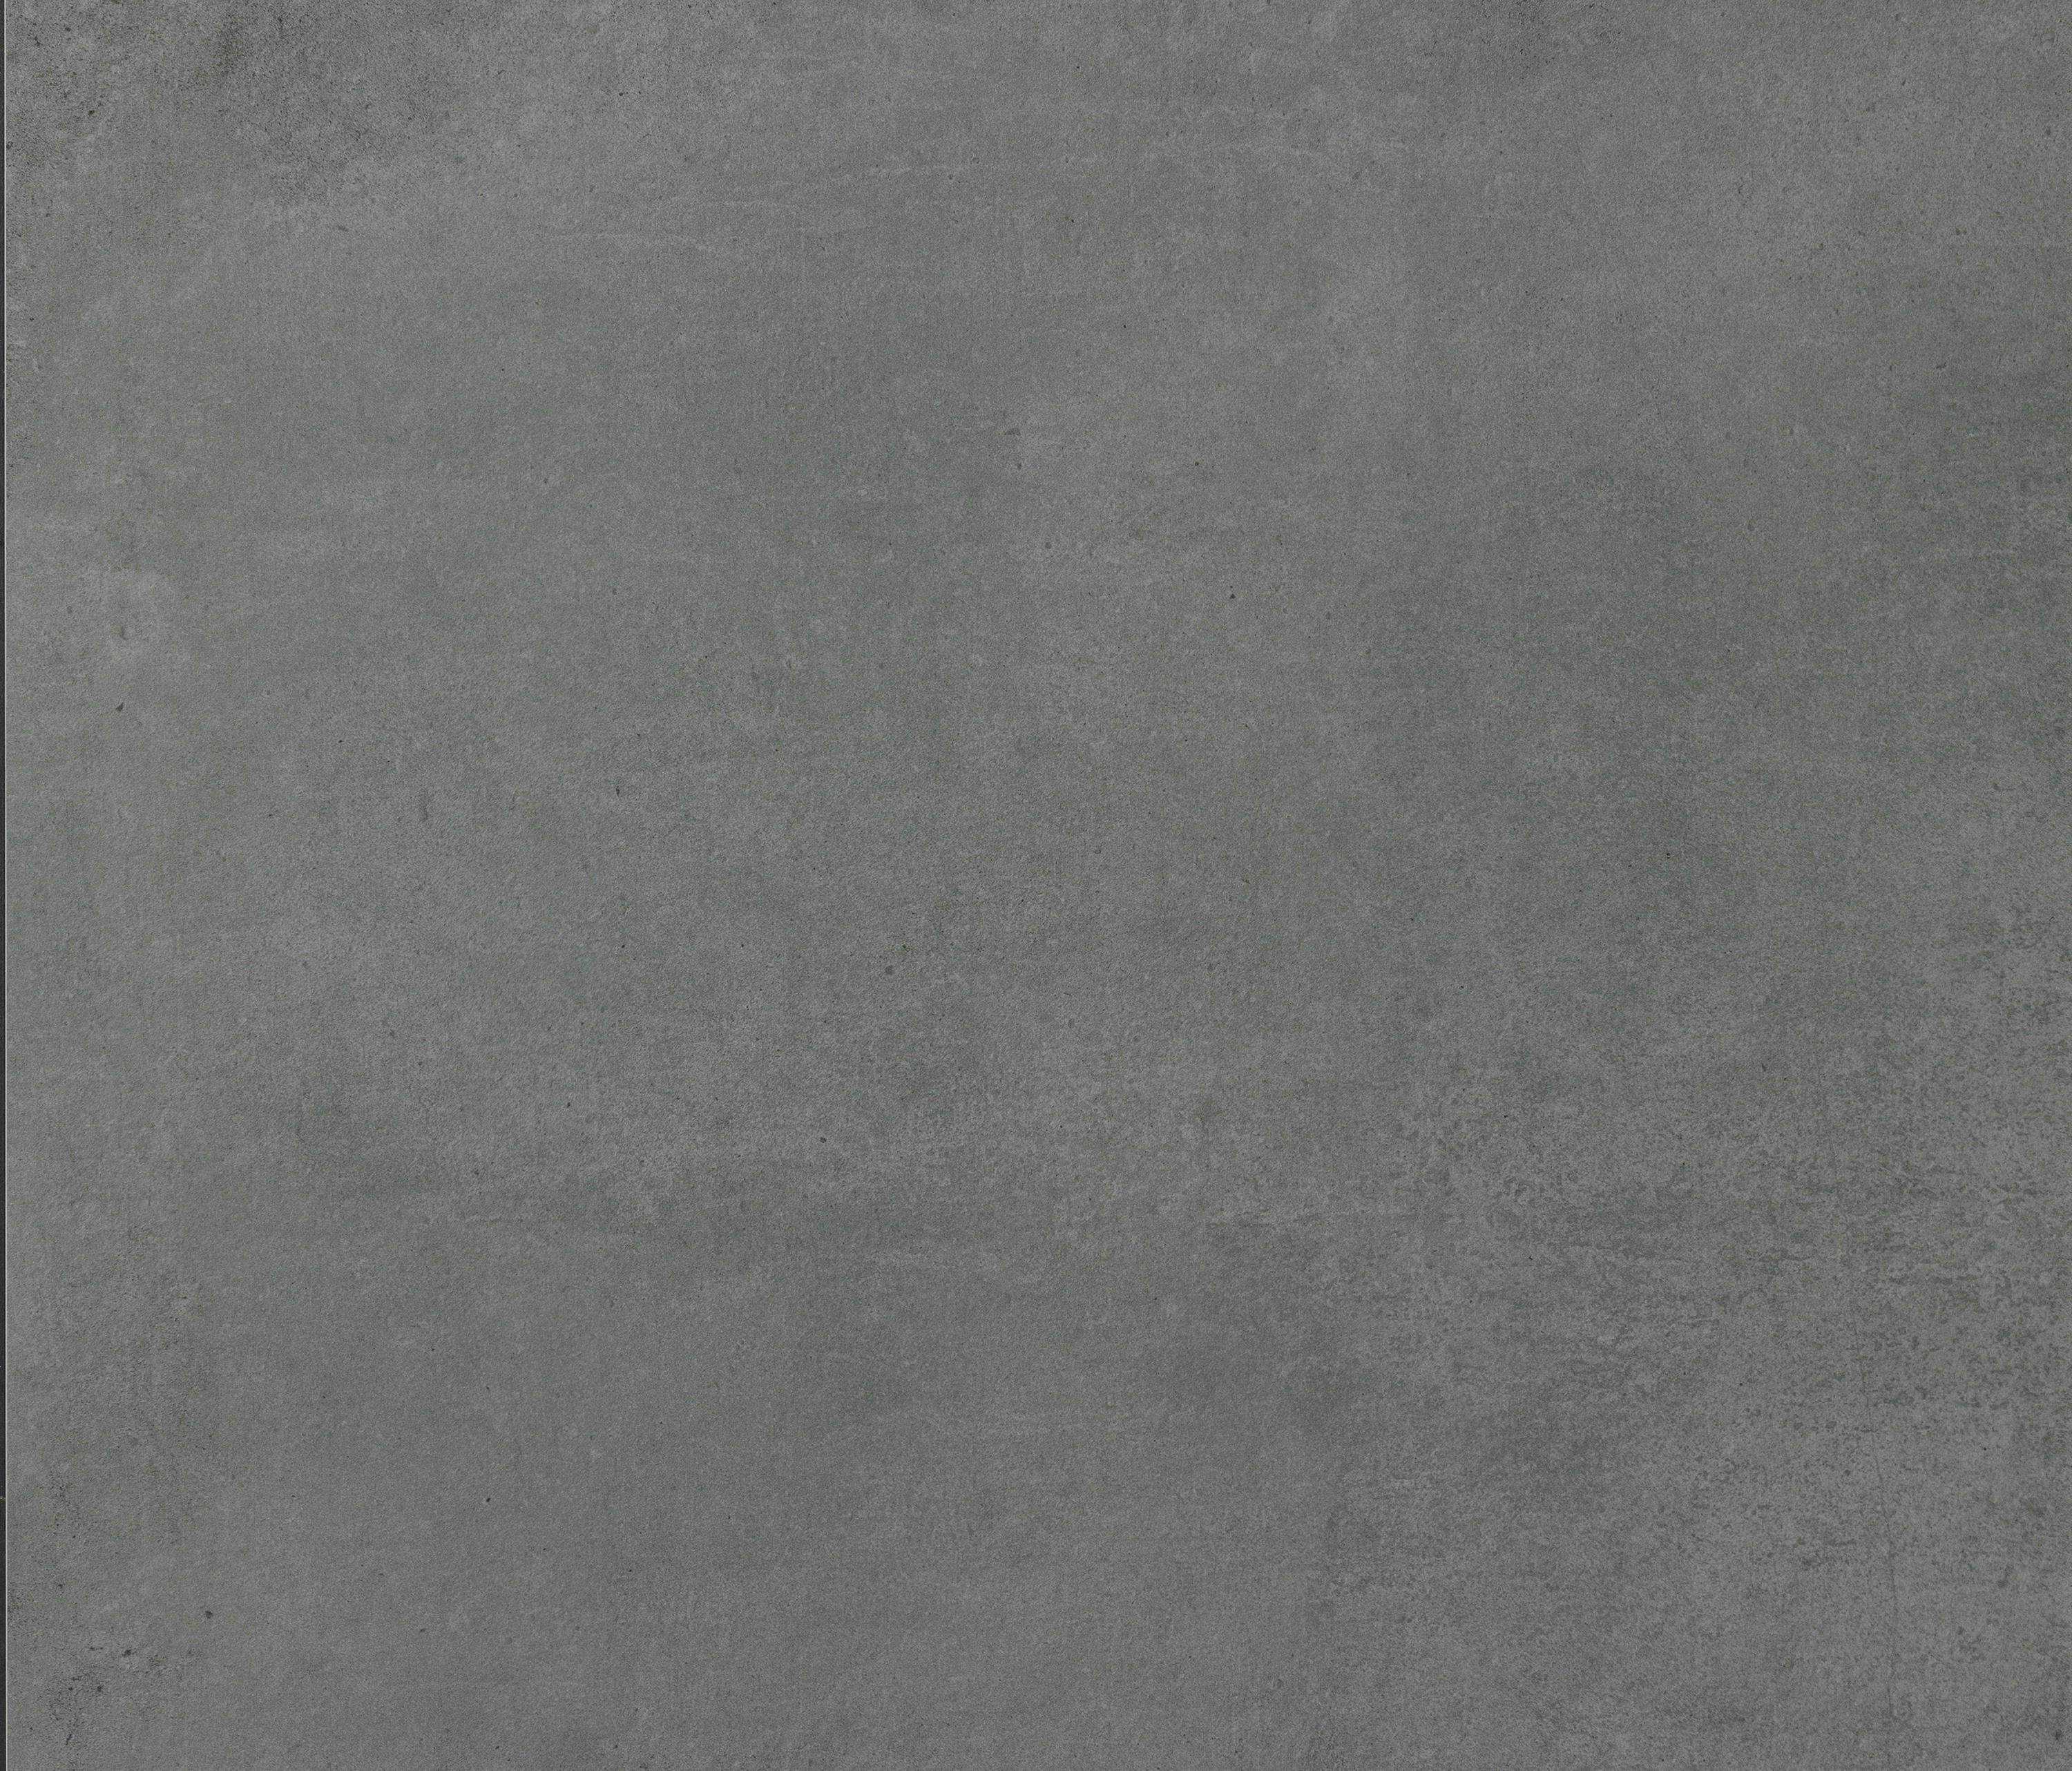 Cement Beton Beton Graphite Ceramic Tiles From Steuler Design Architonic